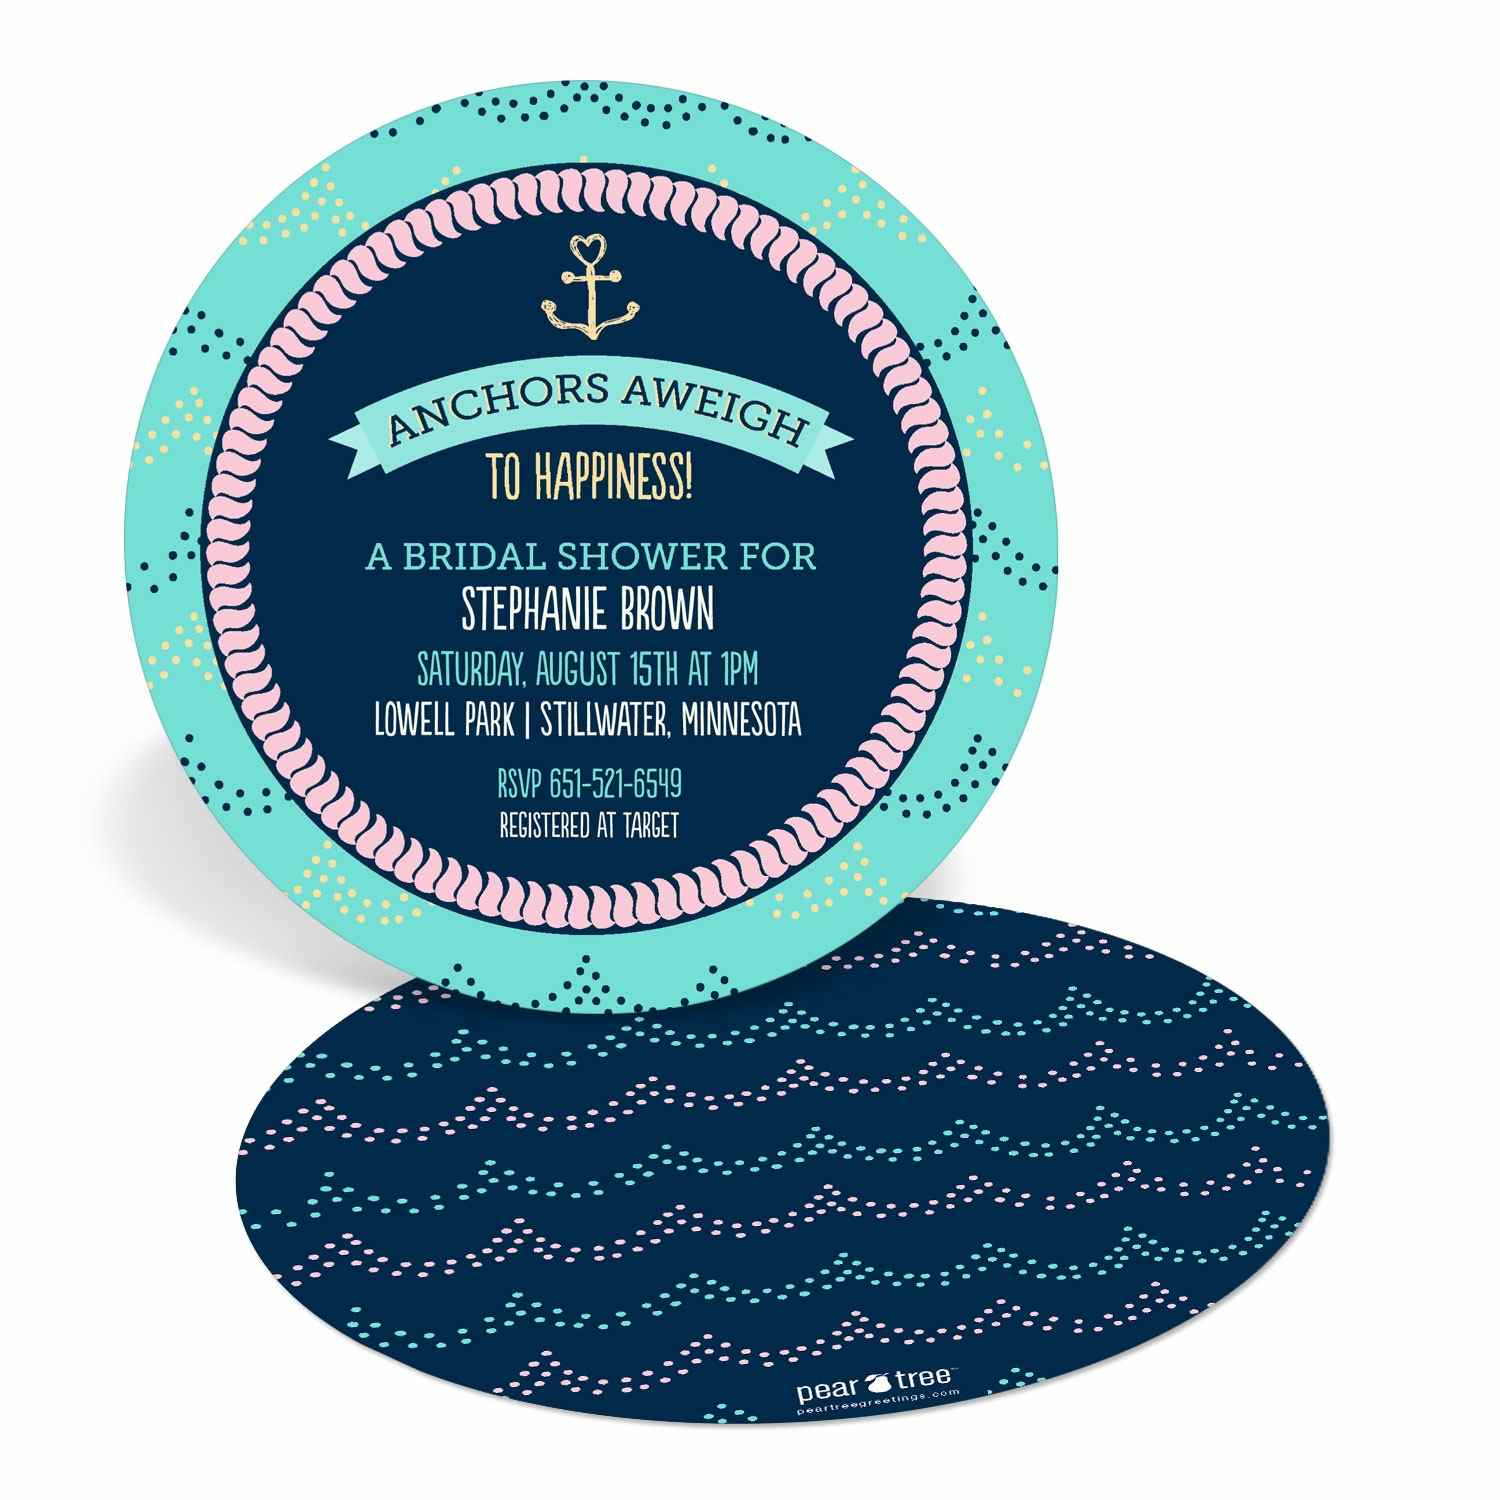 With_This_Ring_Buoy_Bridal_Shower_Invitations